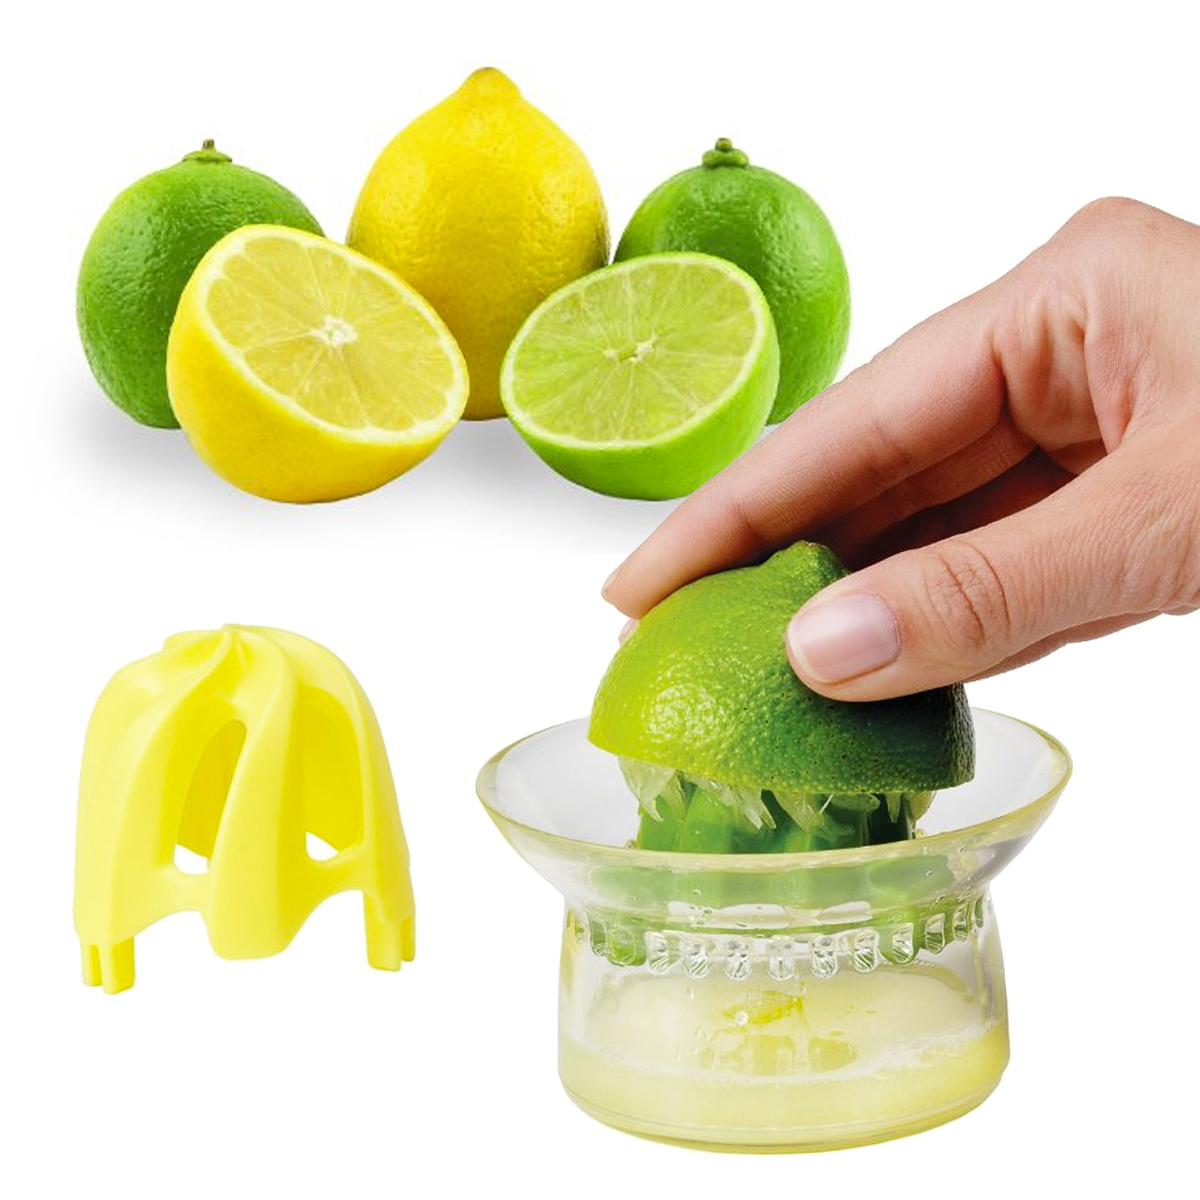 Mini Citrus Juicer Chef'n Vibe Strains Seeds Pulp Measurements On Cup 2 Reamers